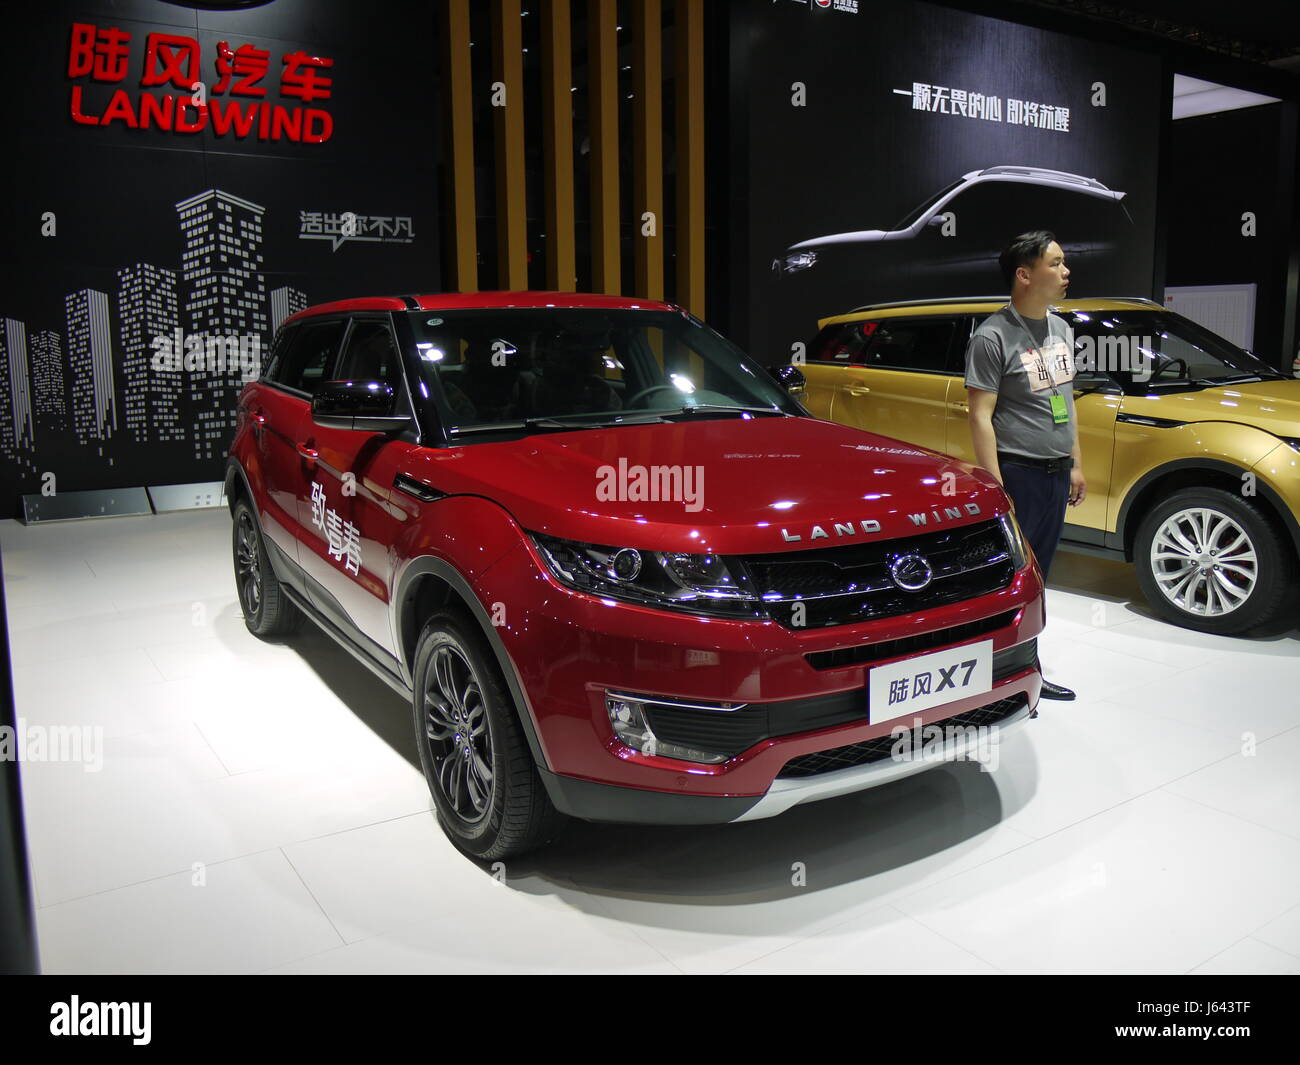 At Shanghai Motor show 2017, a Land Wind model look like a copy of Evoq model from Land Rover - Stock Image